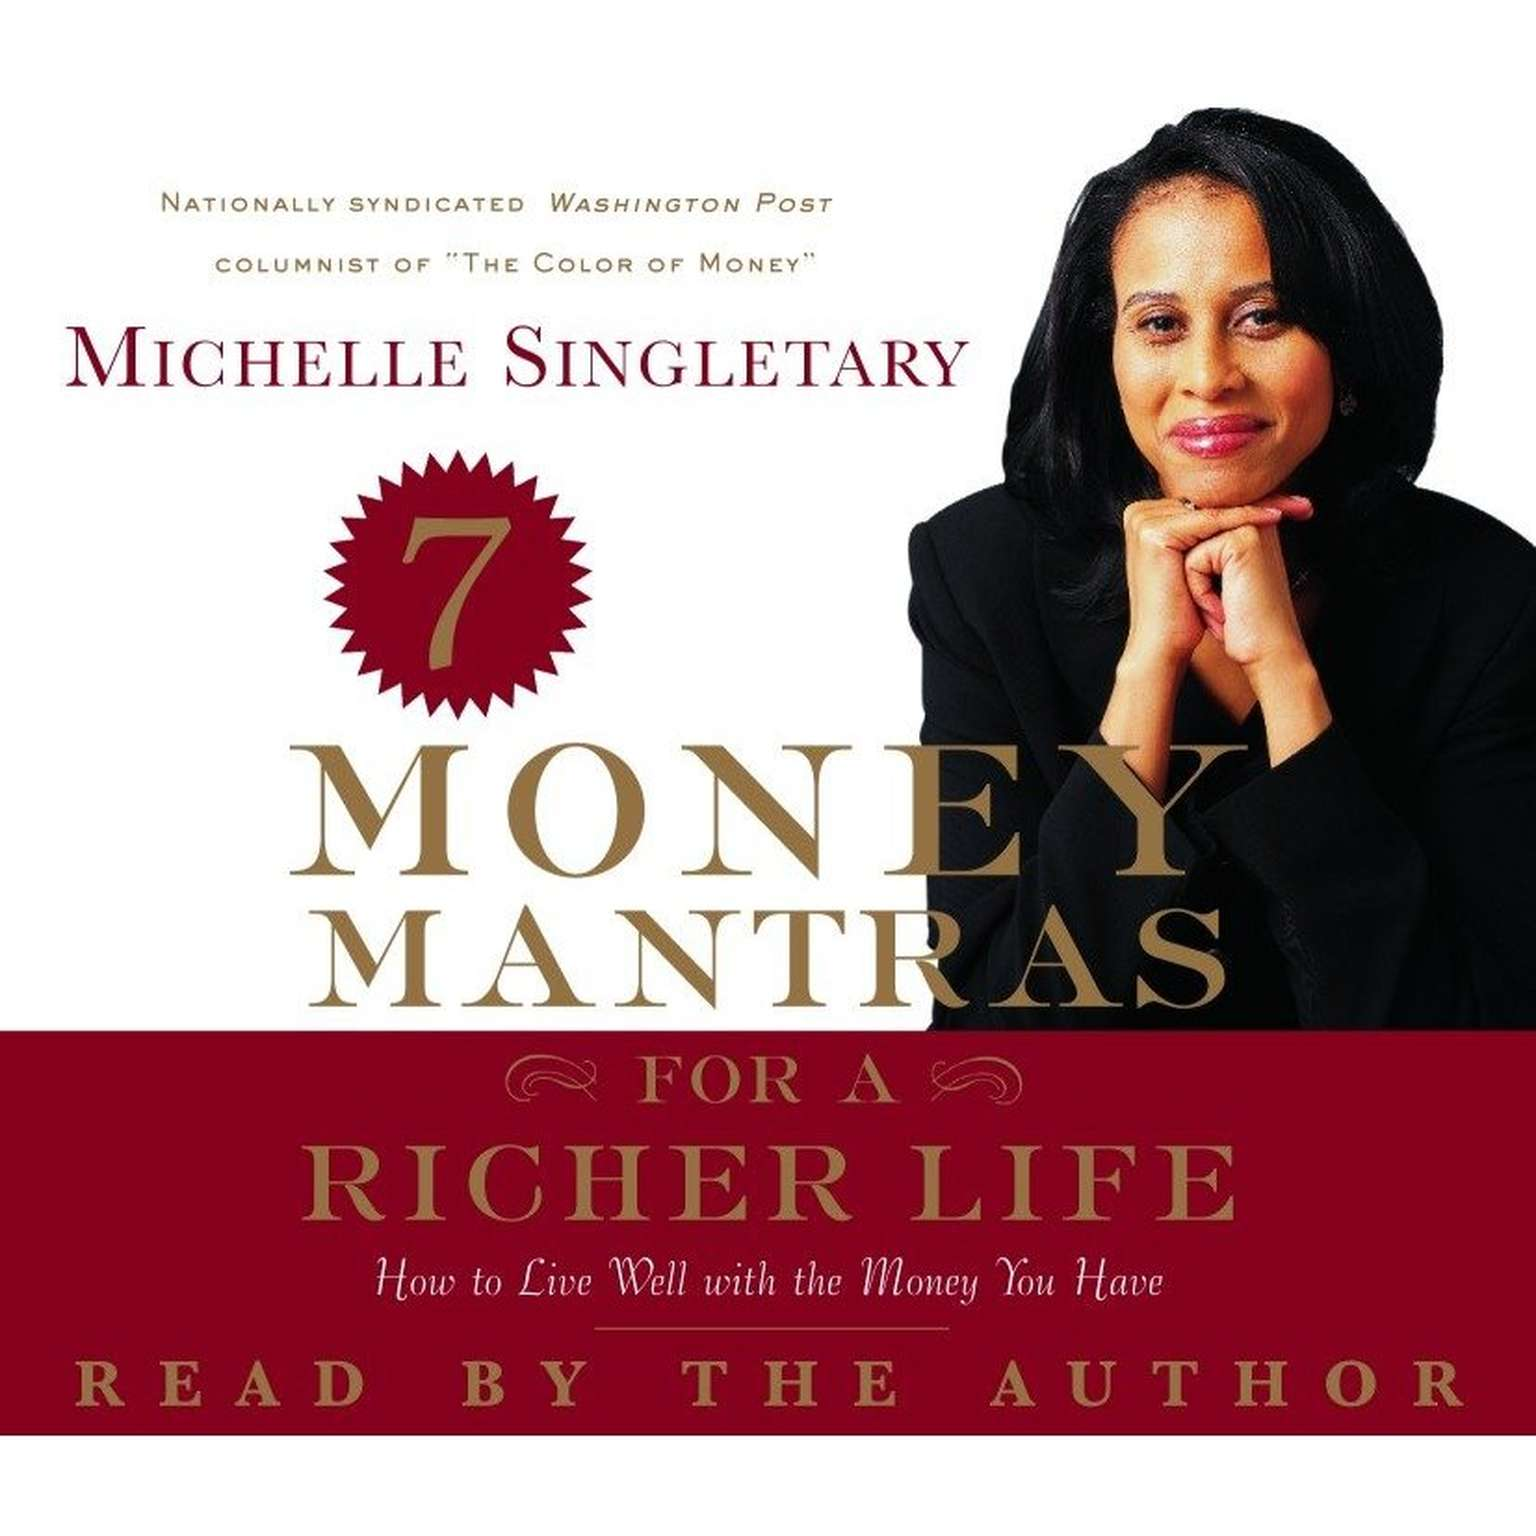 Printable 7 Money Mantras for a Richer Life: How to Live Well with the Money You Have Audiobook Cover Art